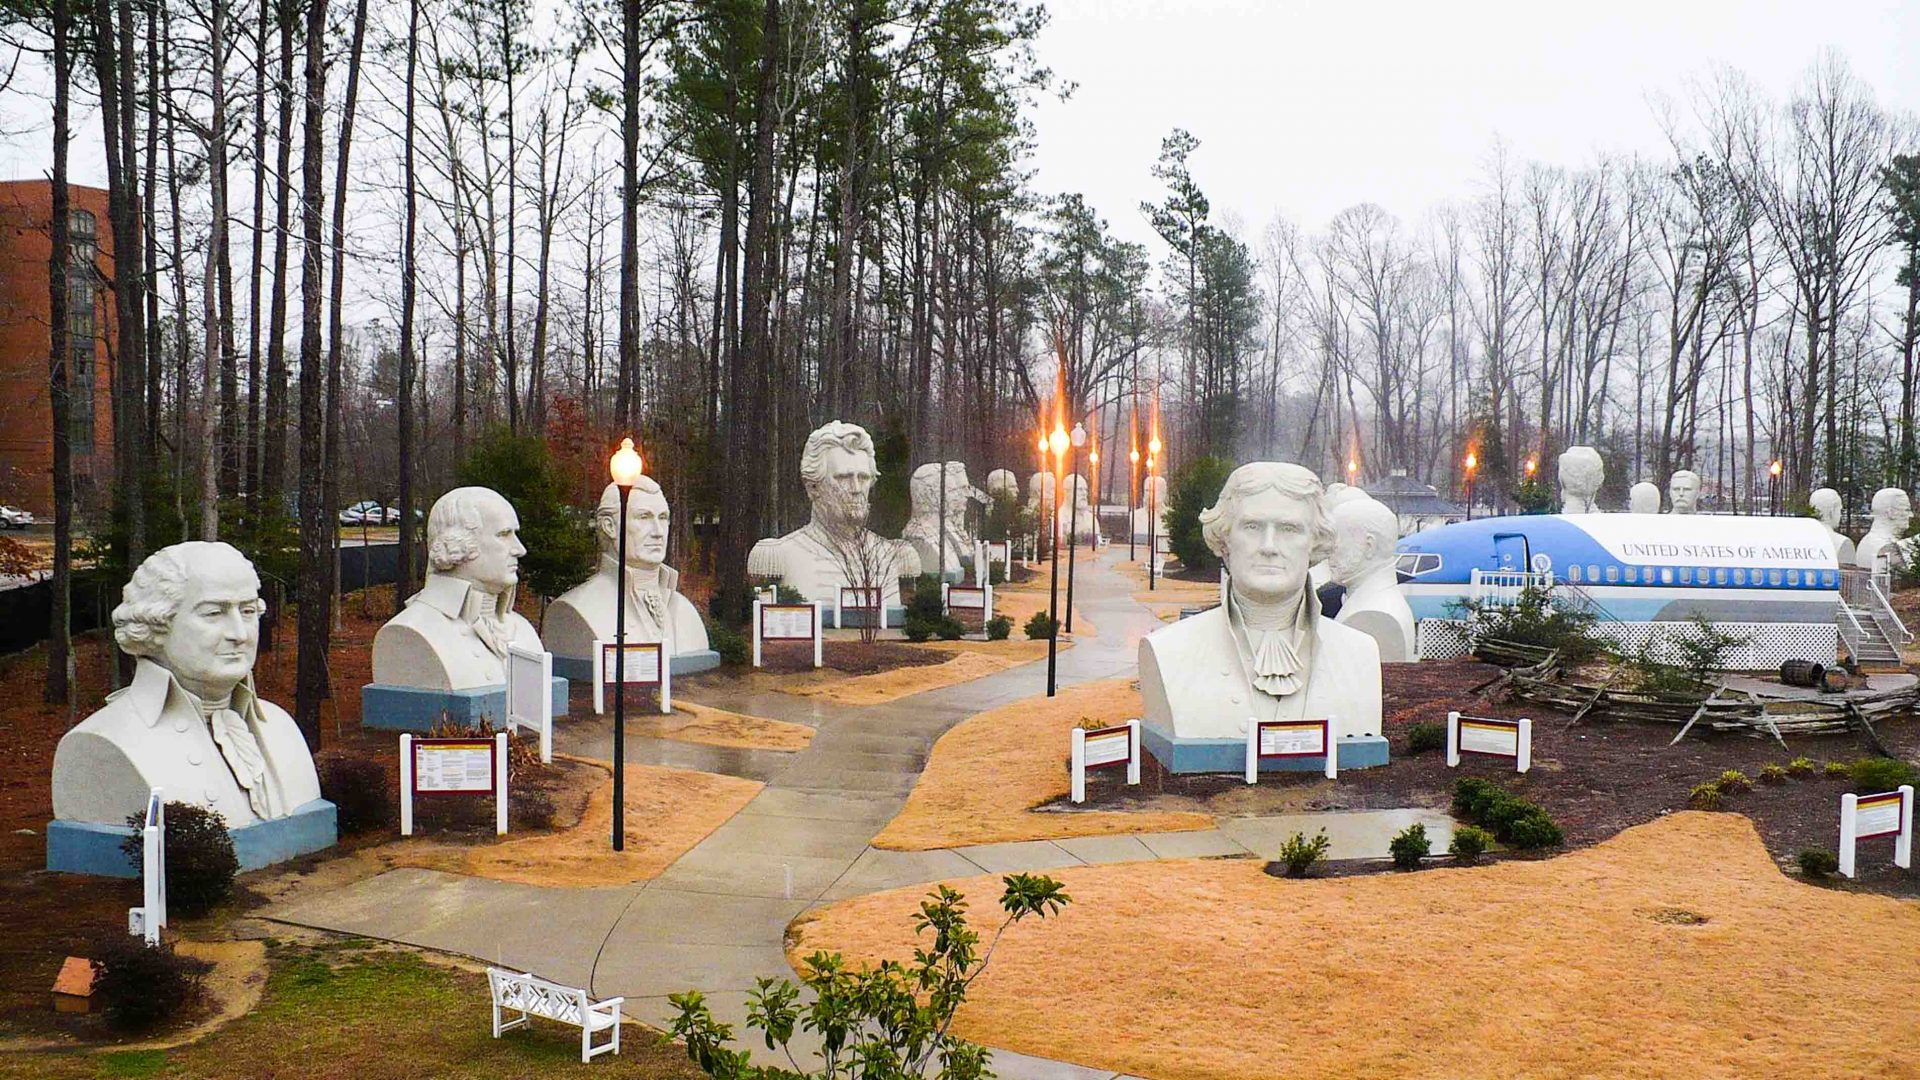 Presidents Park, a sculpture park in Virginia that while now closed, previously housed the busts of most of the former US presidents.